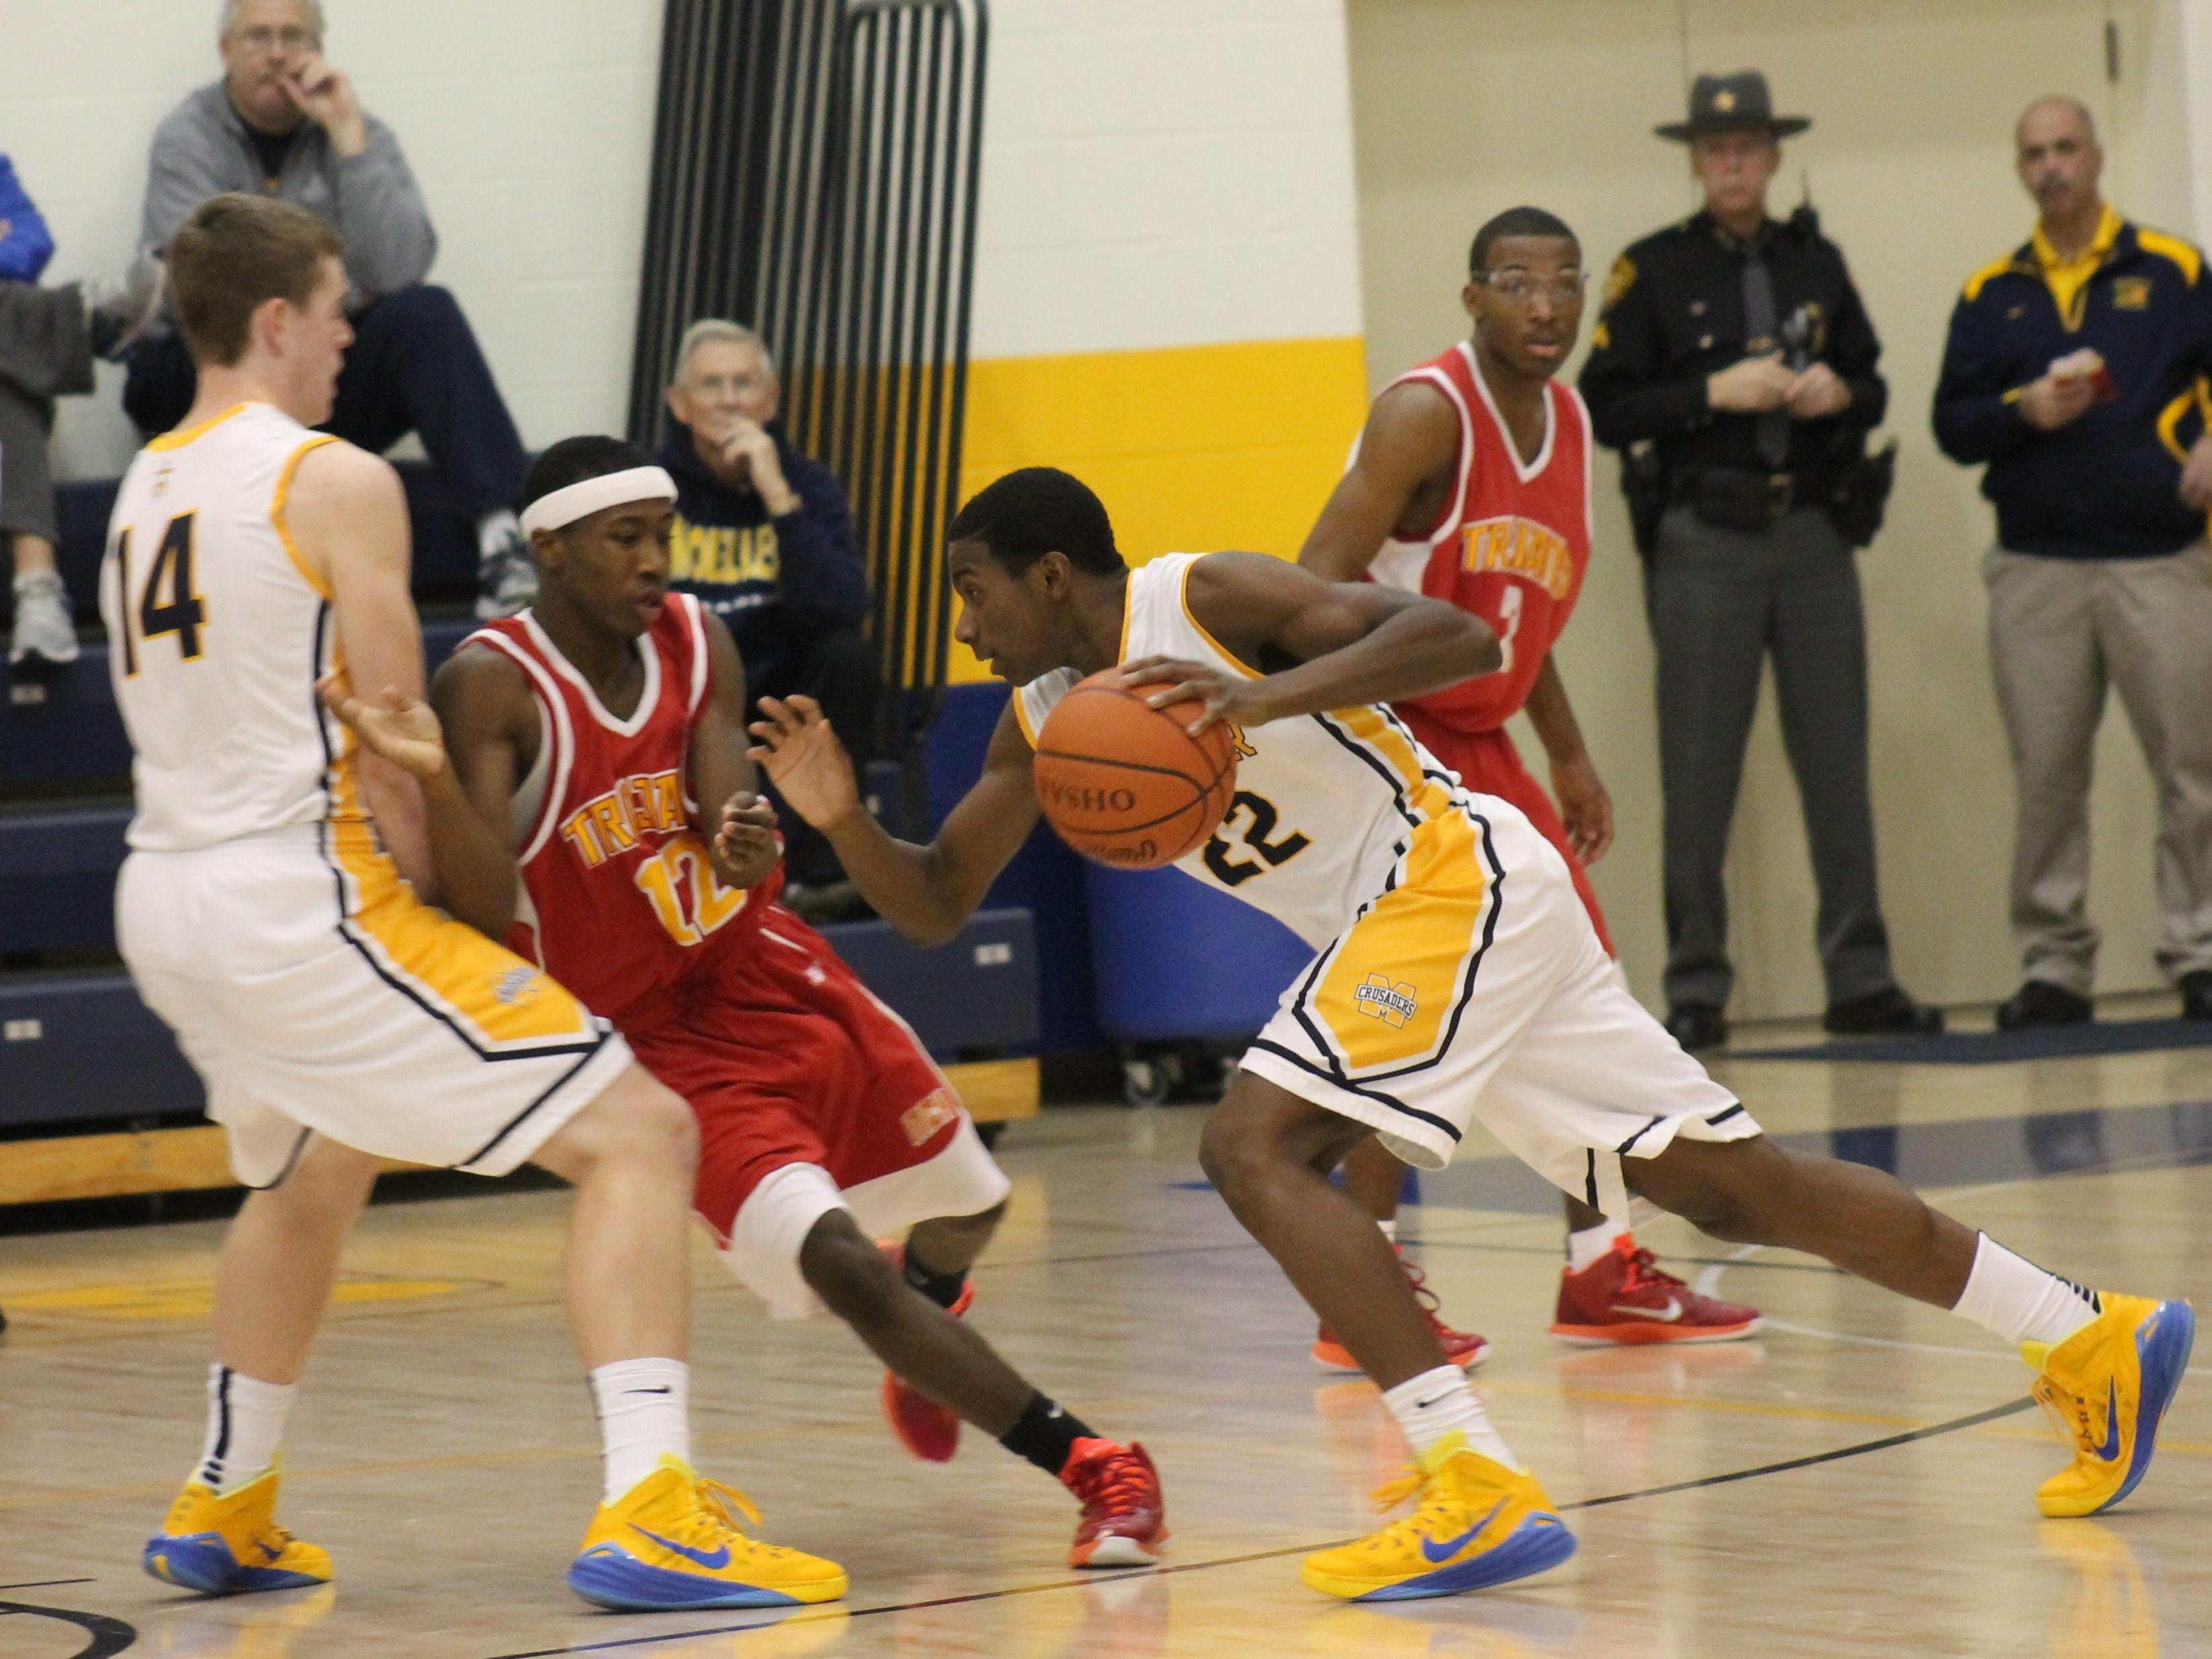 Moeller's Trey McBride prepares to drive around the pick of Riley Voss (14) against North College Hill last season.